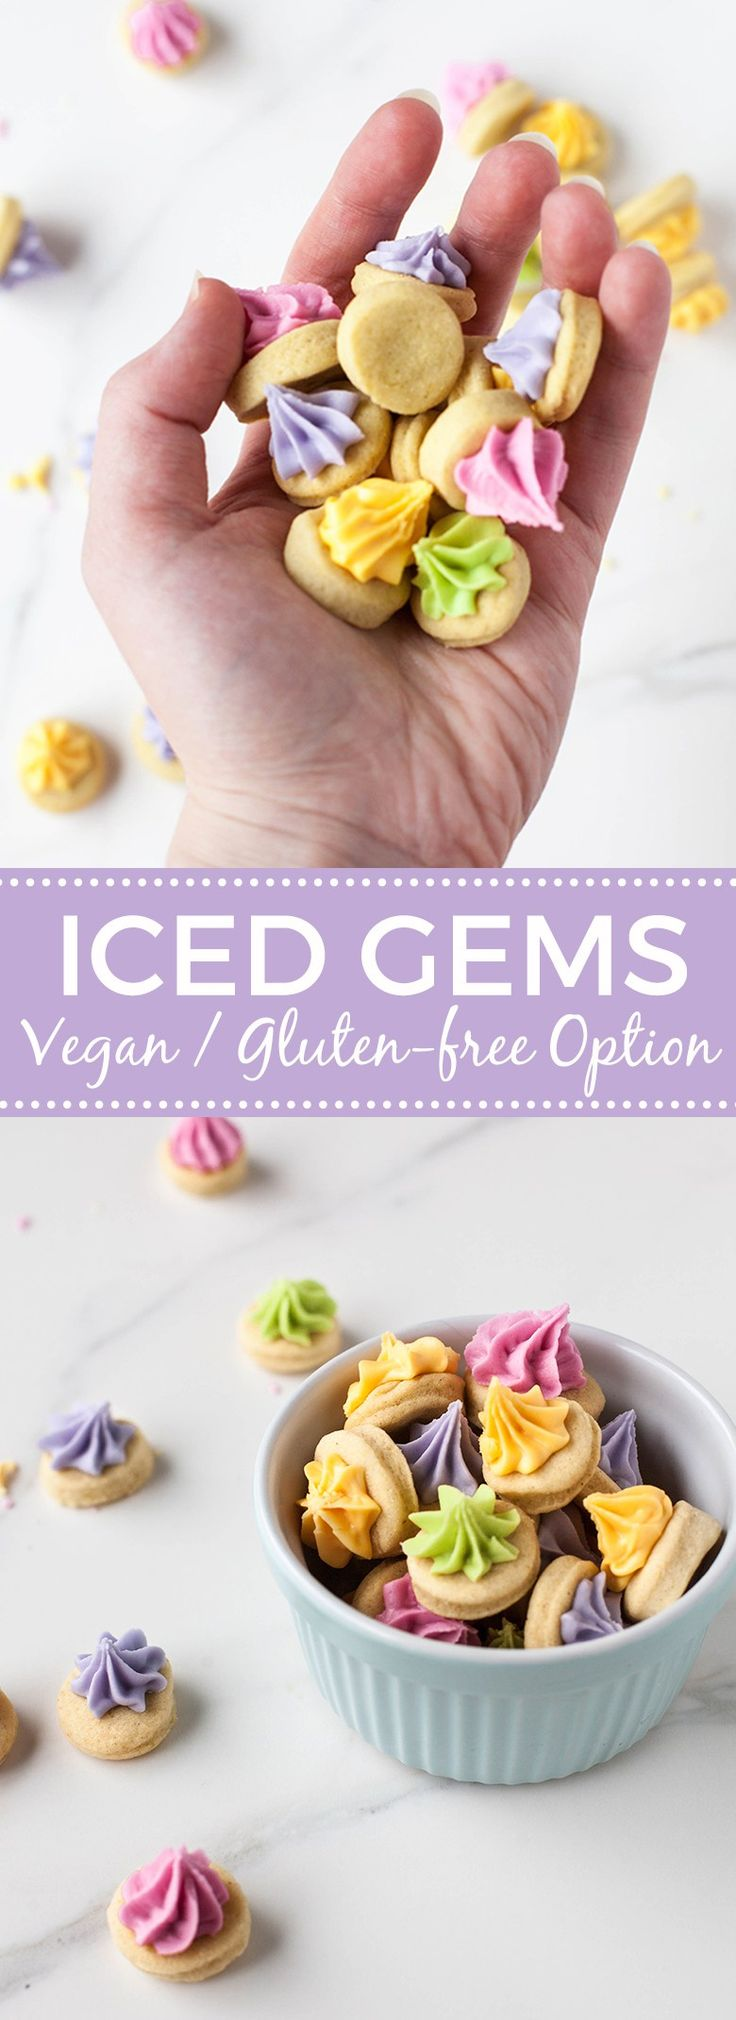 Iced gems! Vegan with gluten-free option.